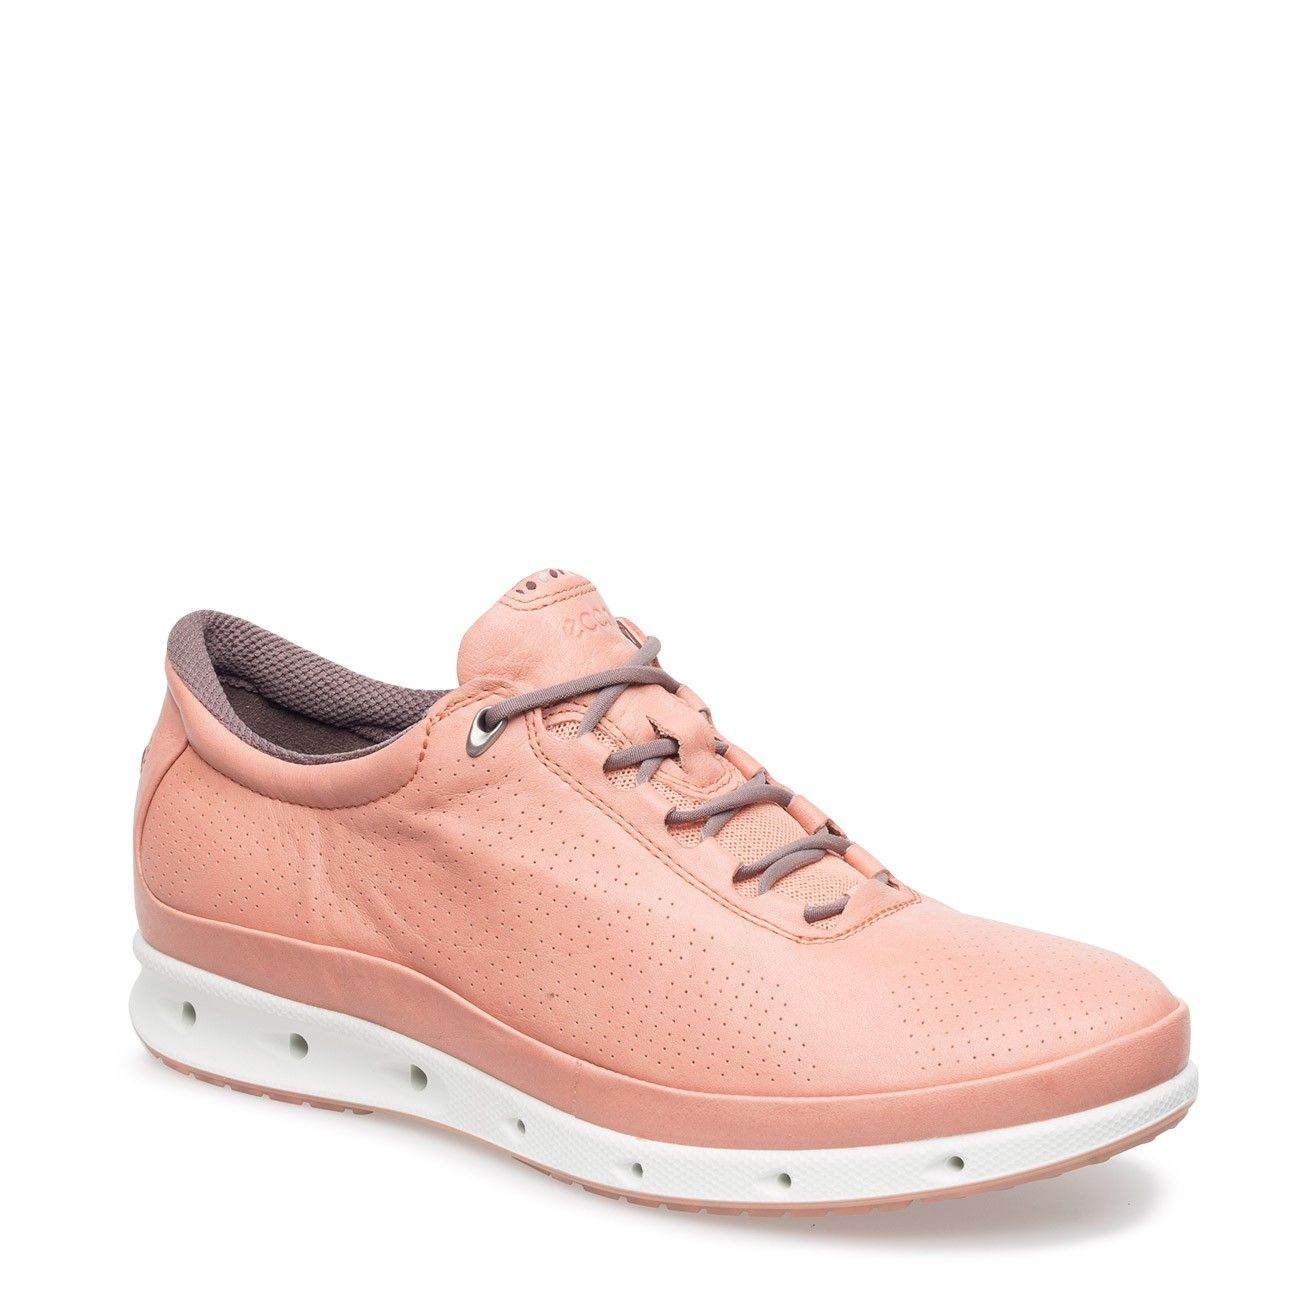 Baby Pink Cool Sneaker by ECCO. Available at Shoes121.